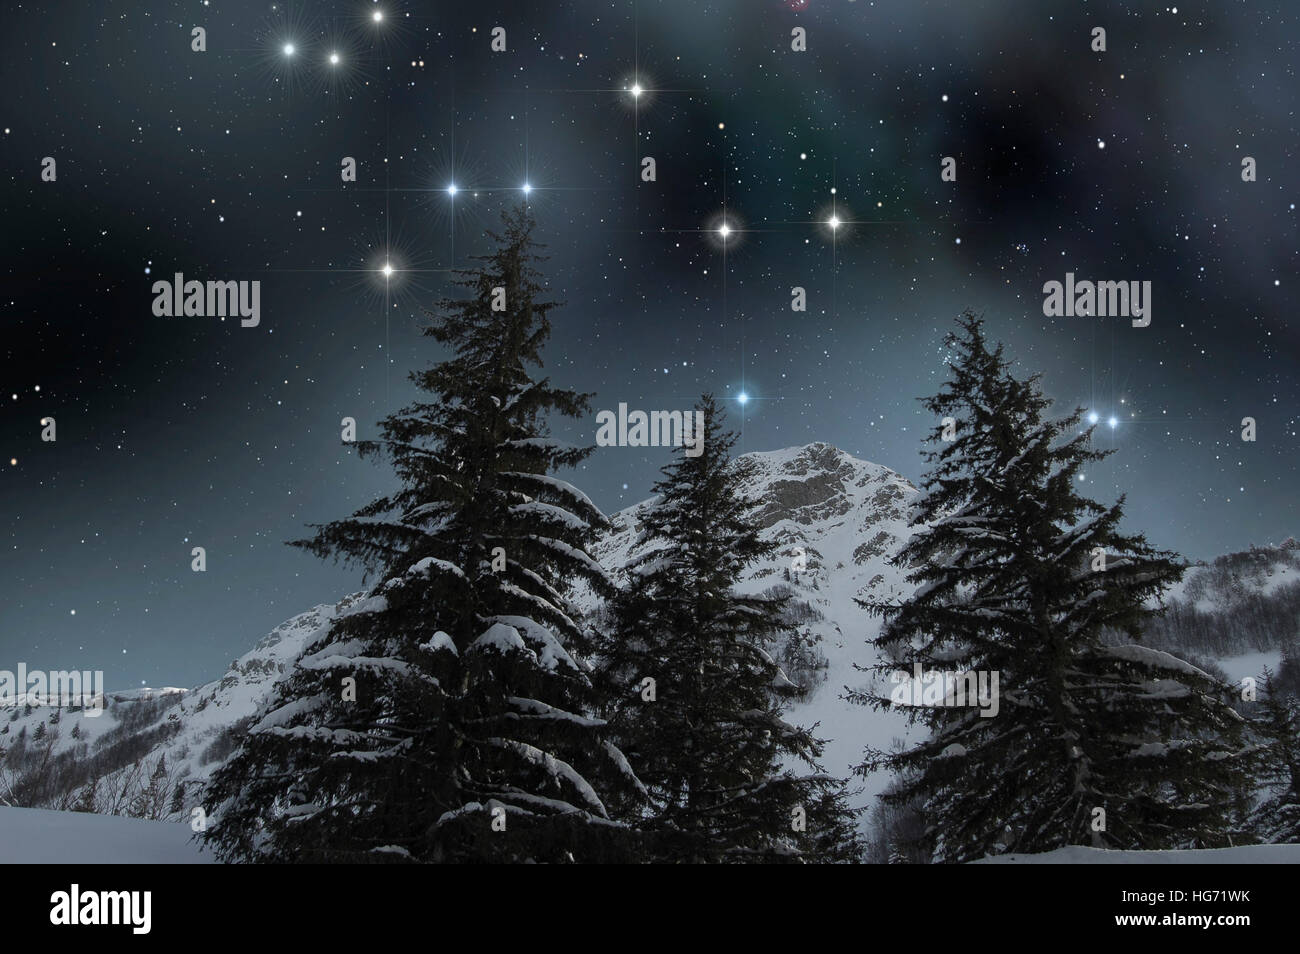 Winter landscape of snowy mountain with firs under a starry sky - Stock Image